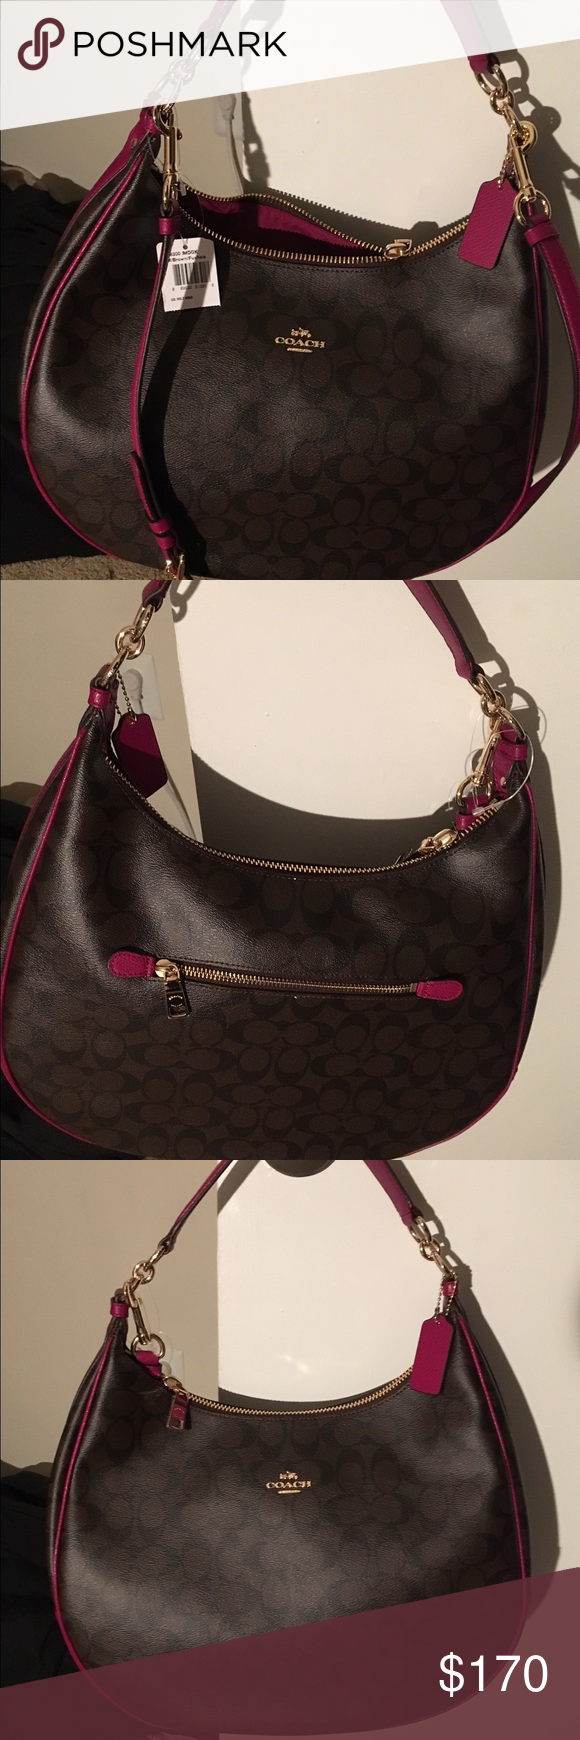 Coach bag Brand new authentic coach bag Coach Bags Shoulder Bags